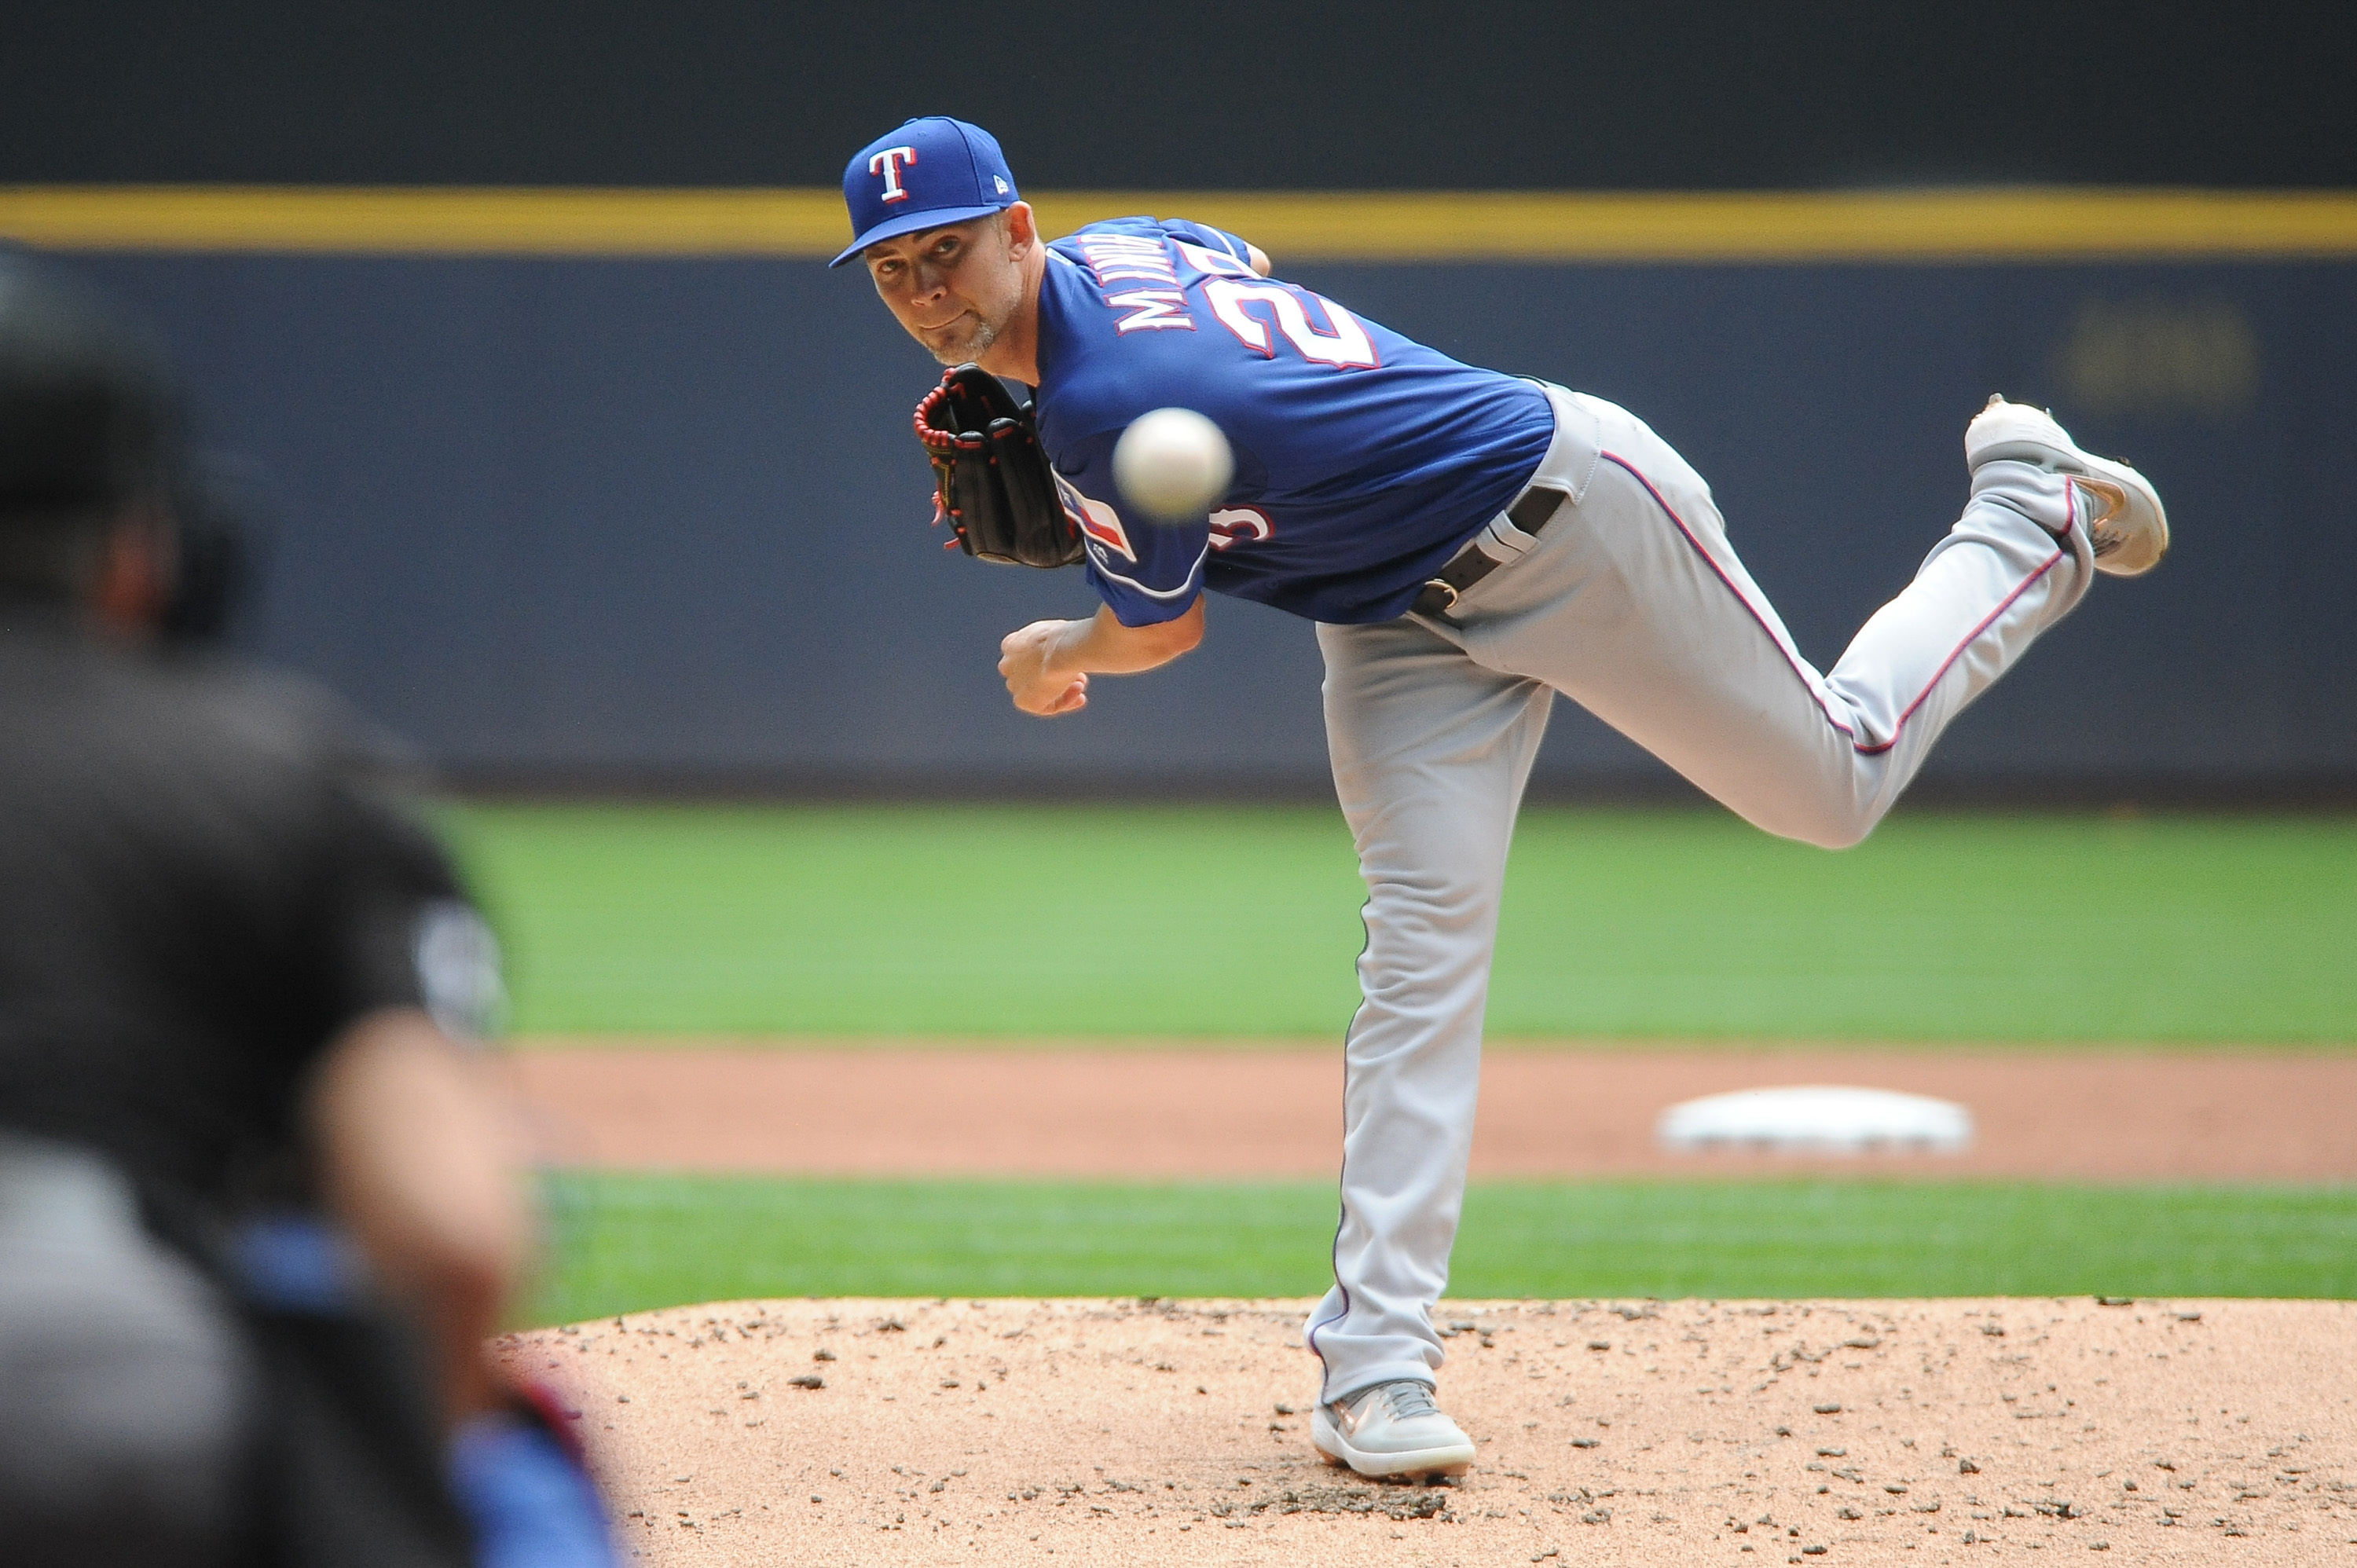 'I Want To Be a Part Of It'; Mike Minor Interested in Extension With the Rangers